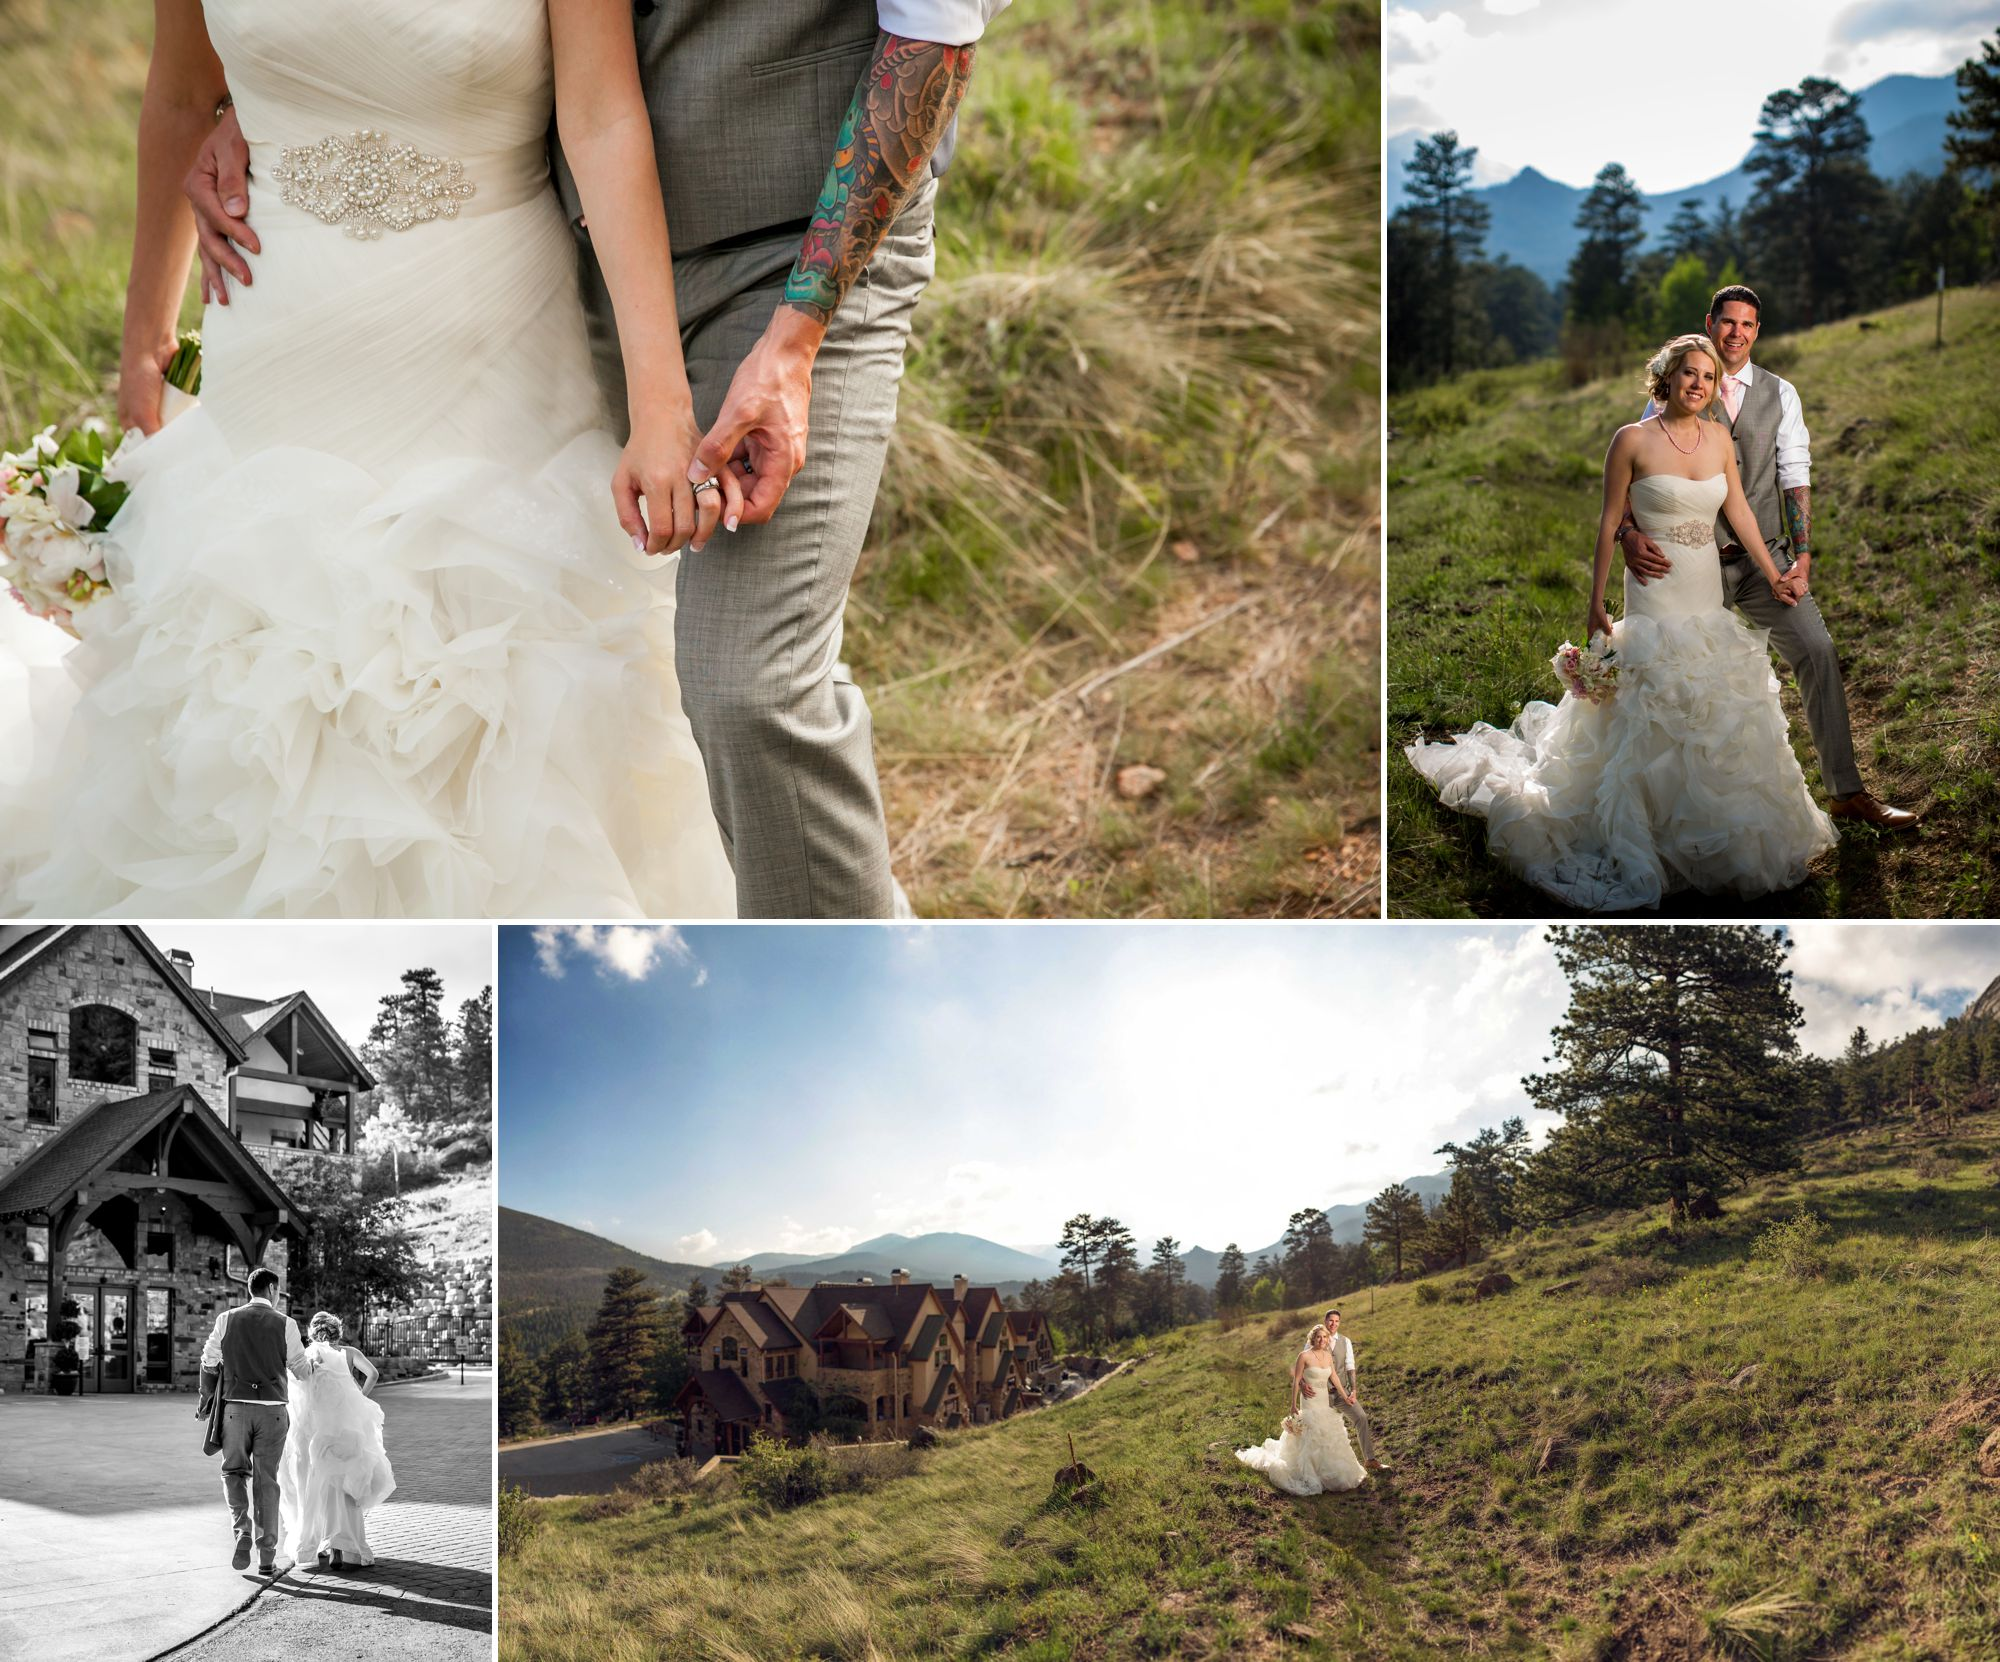 Another Della Terrapanorama, this time with our gorgeous bride and handsome groom!